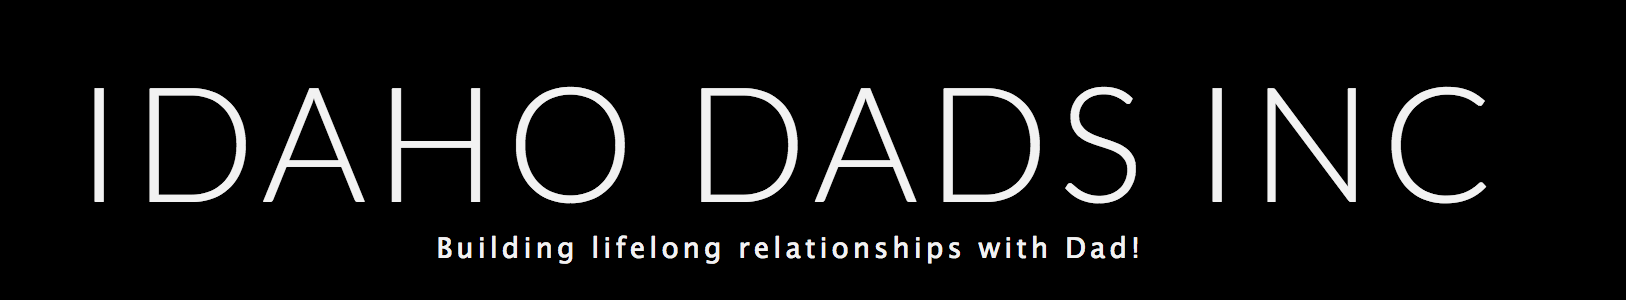 Idaho Dads Inc